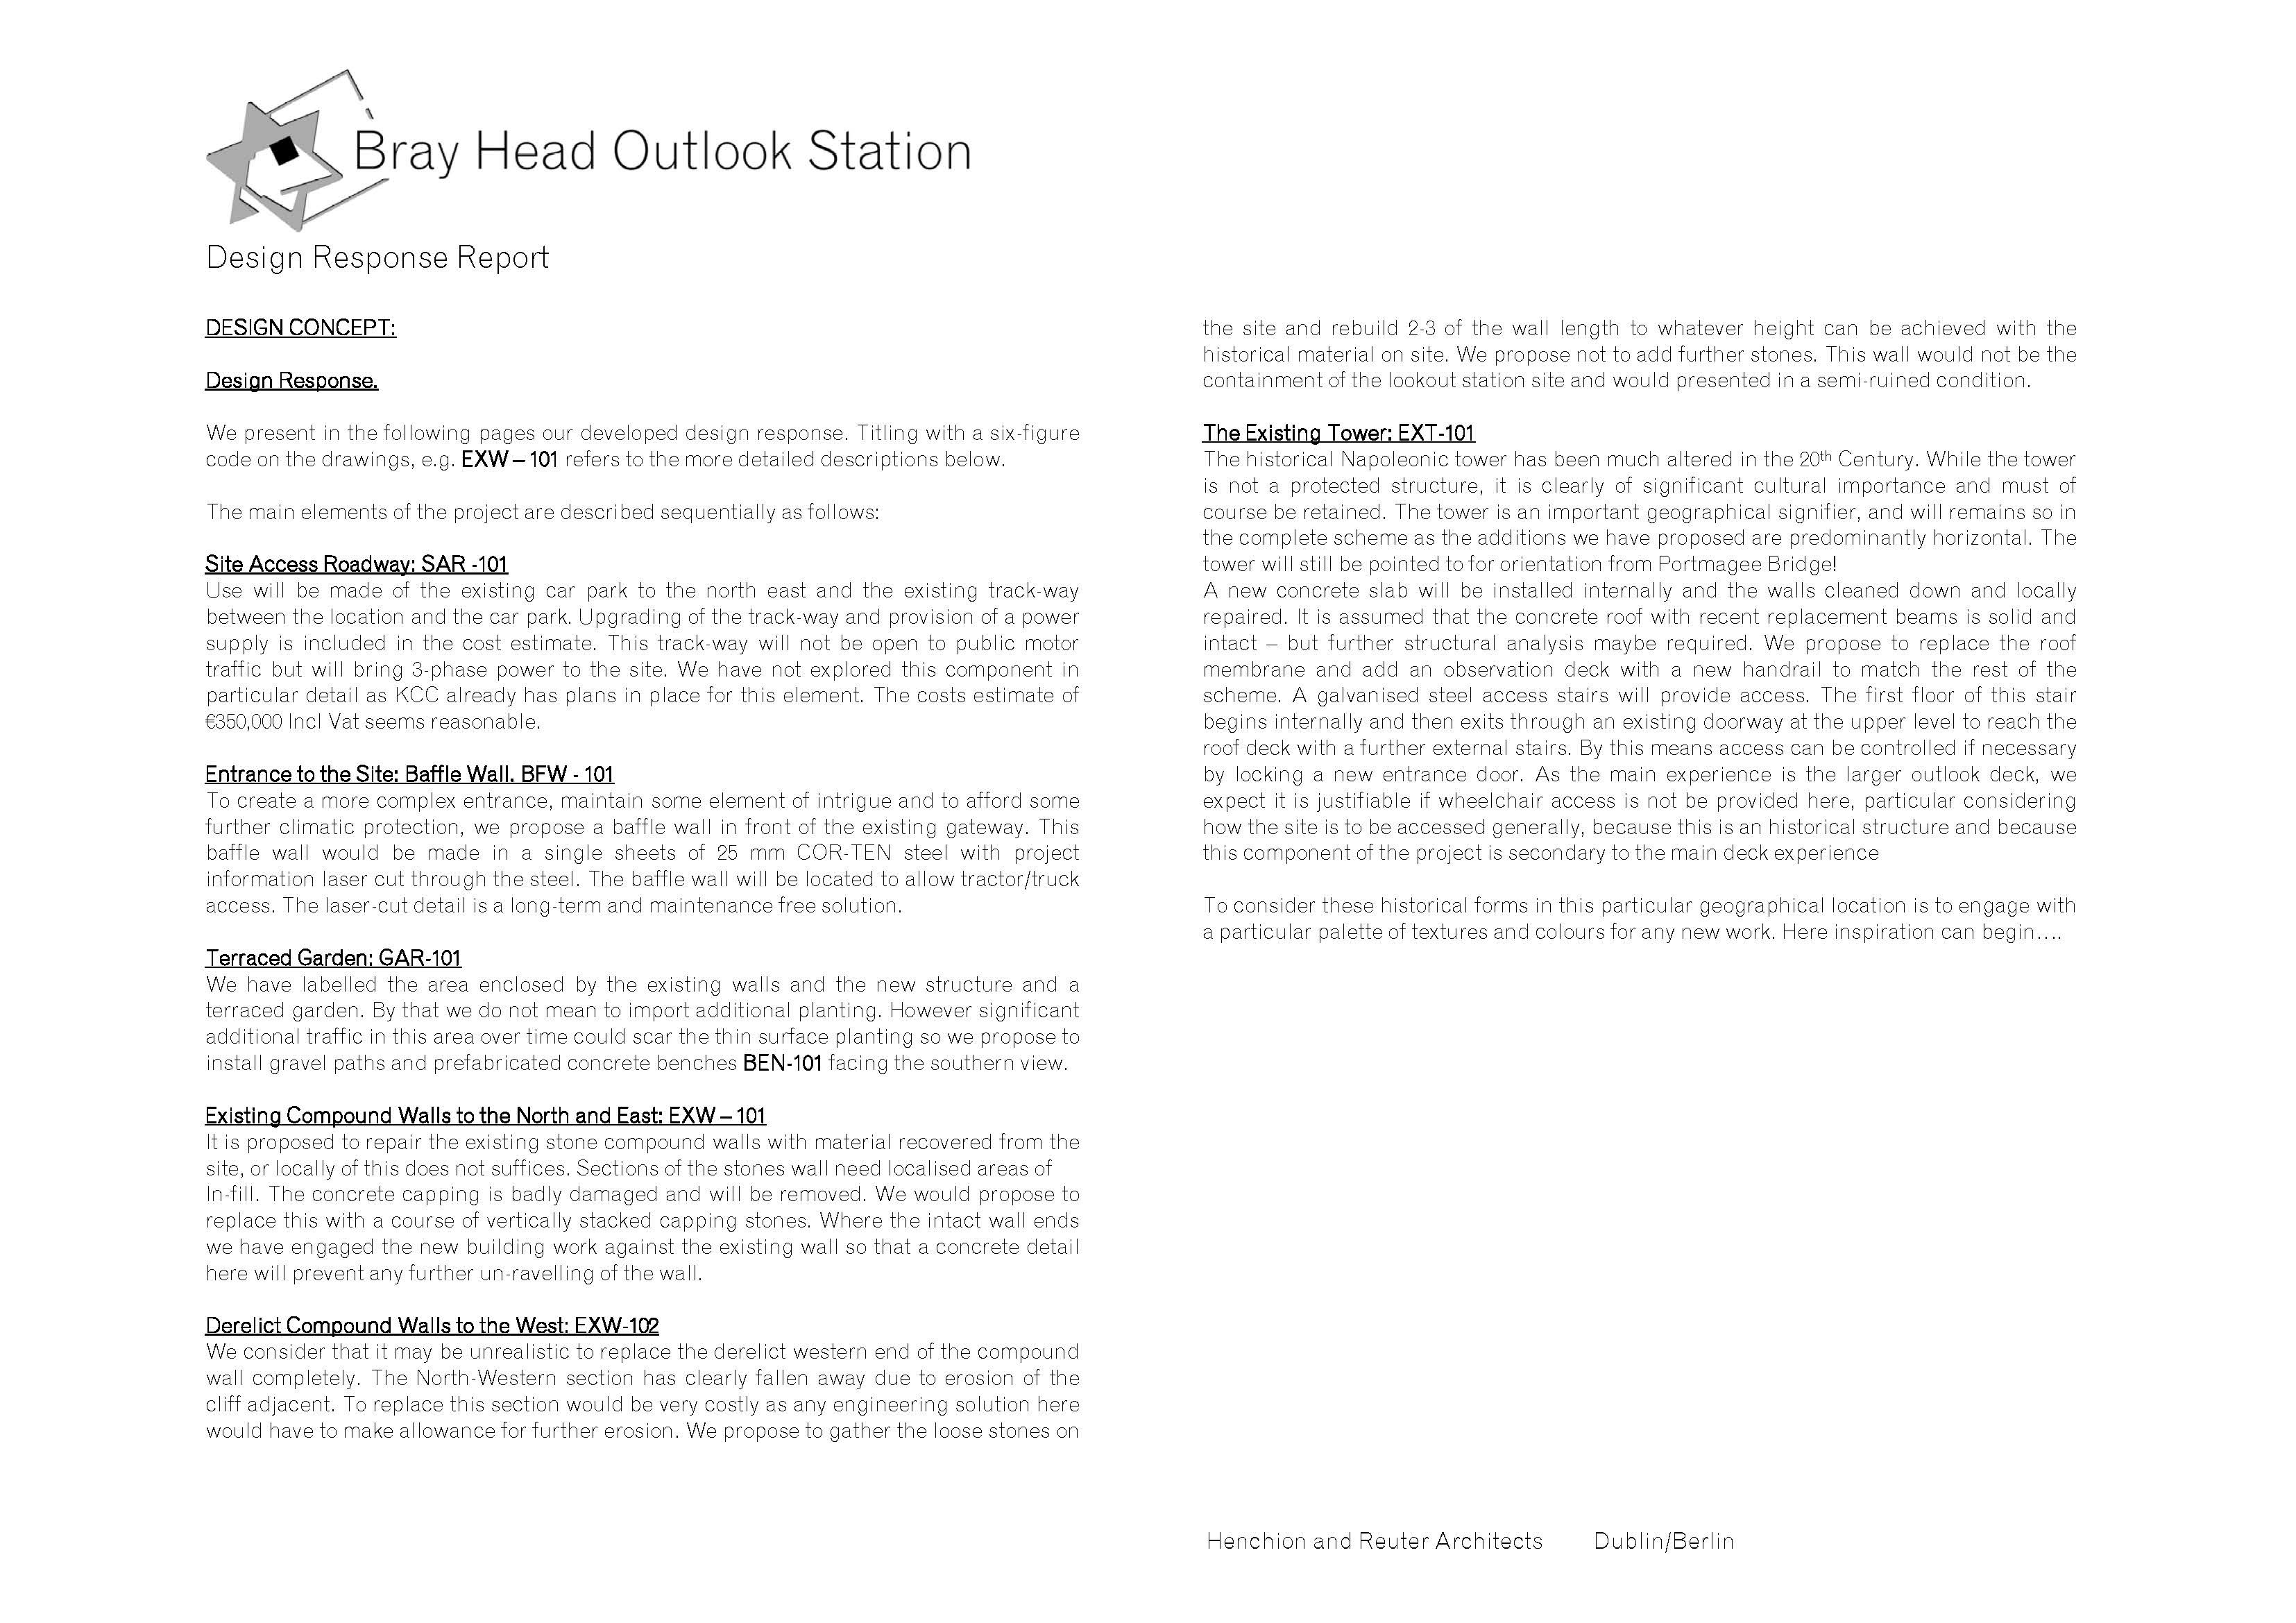 y Head Outlook Station - Henchion Reuter Architects Page on